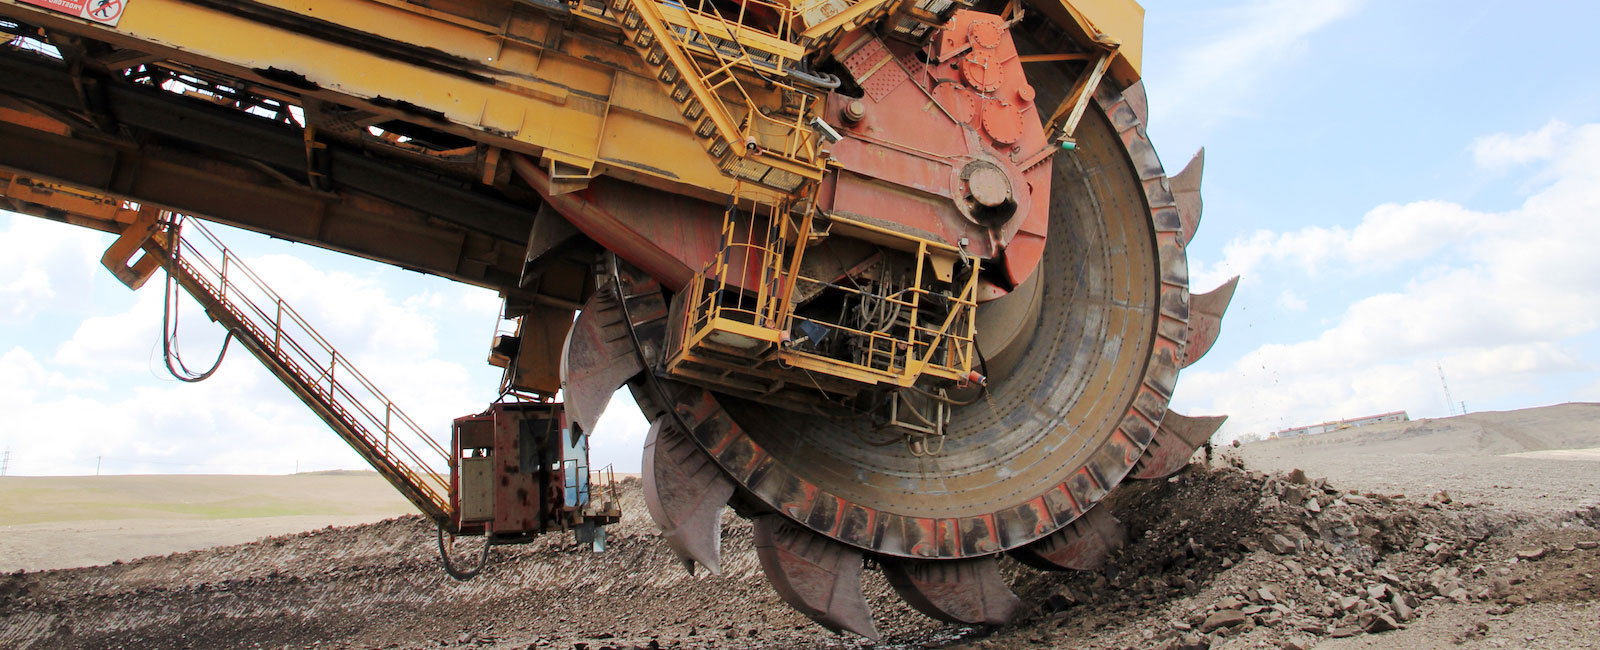 TAKRAF 700-liter Bucket-Wheel Excavator starts Operation at major Lignite Mine in India